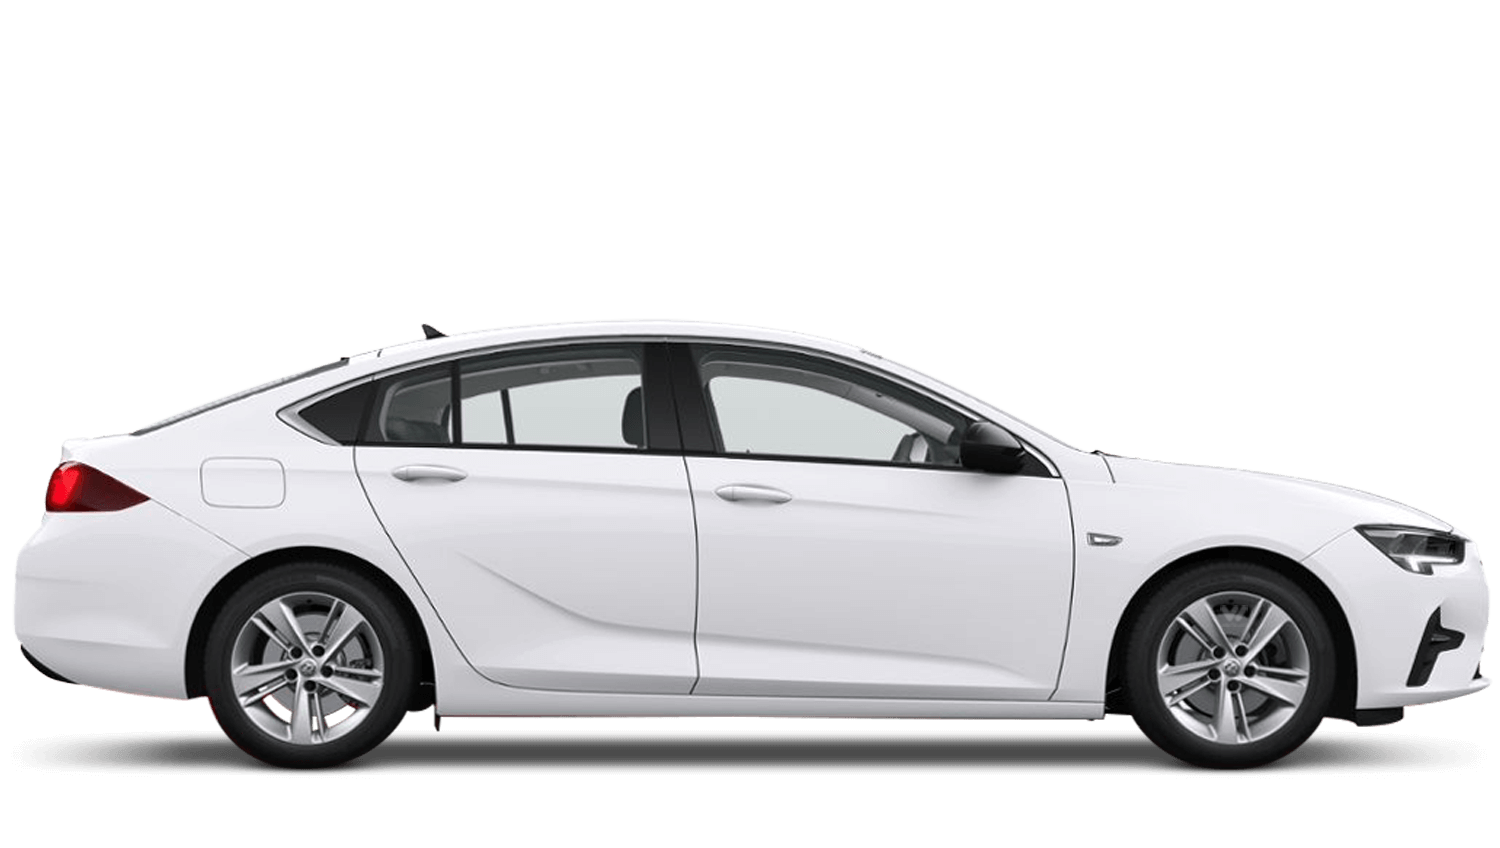 Summit White (Brilliant) Vauxhall Insignia New